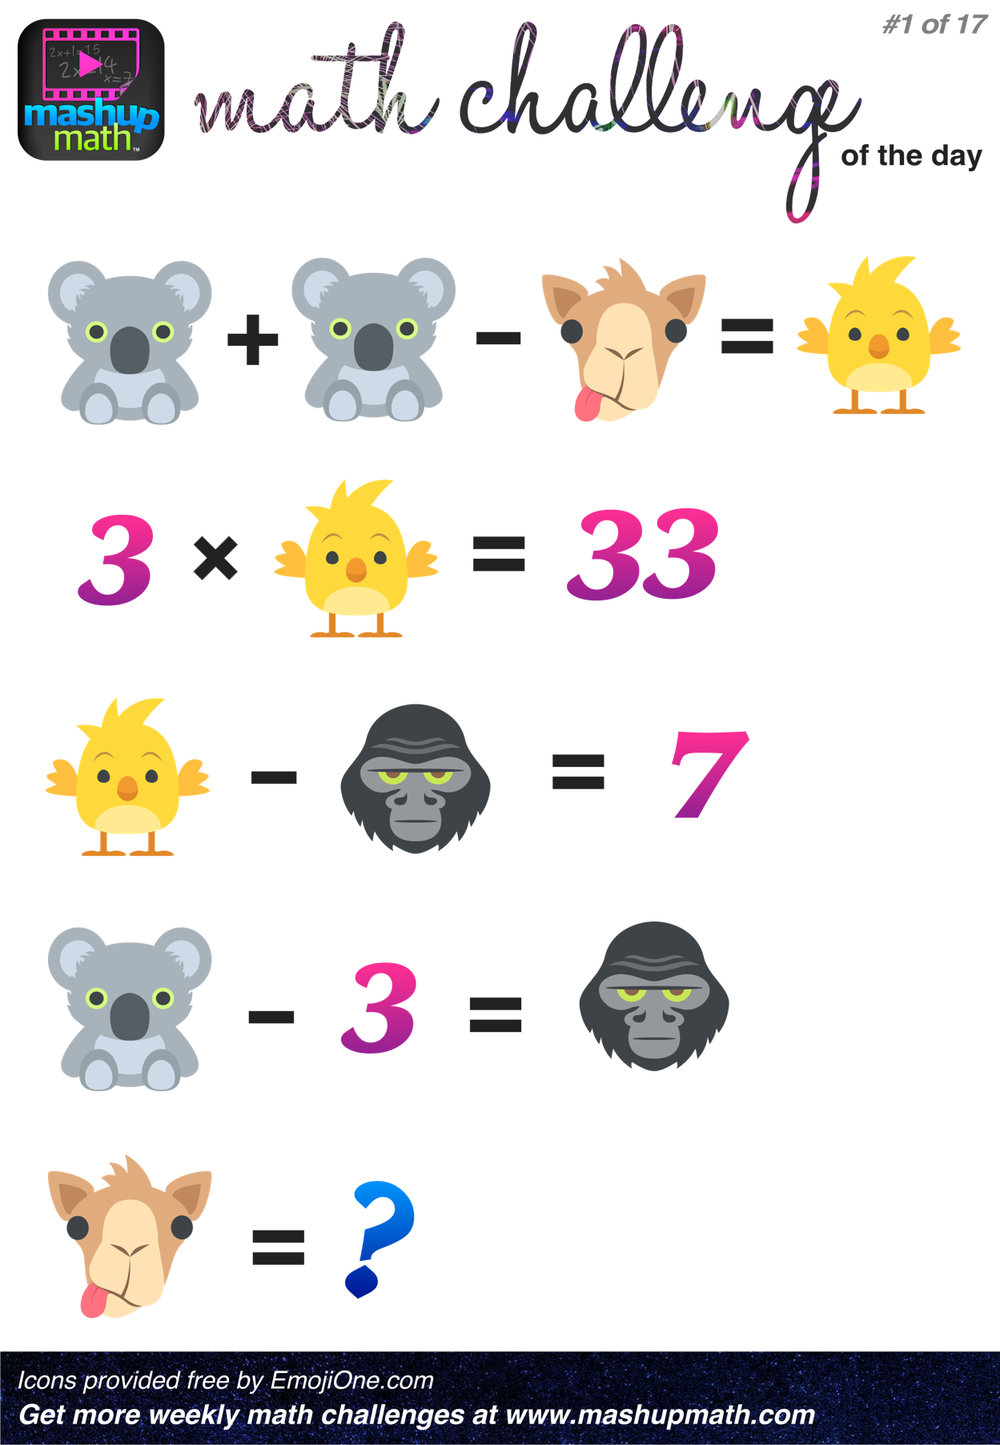 It is an image of Légend Math Challenge Puzzles